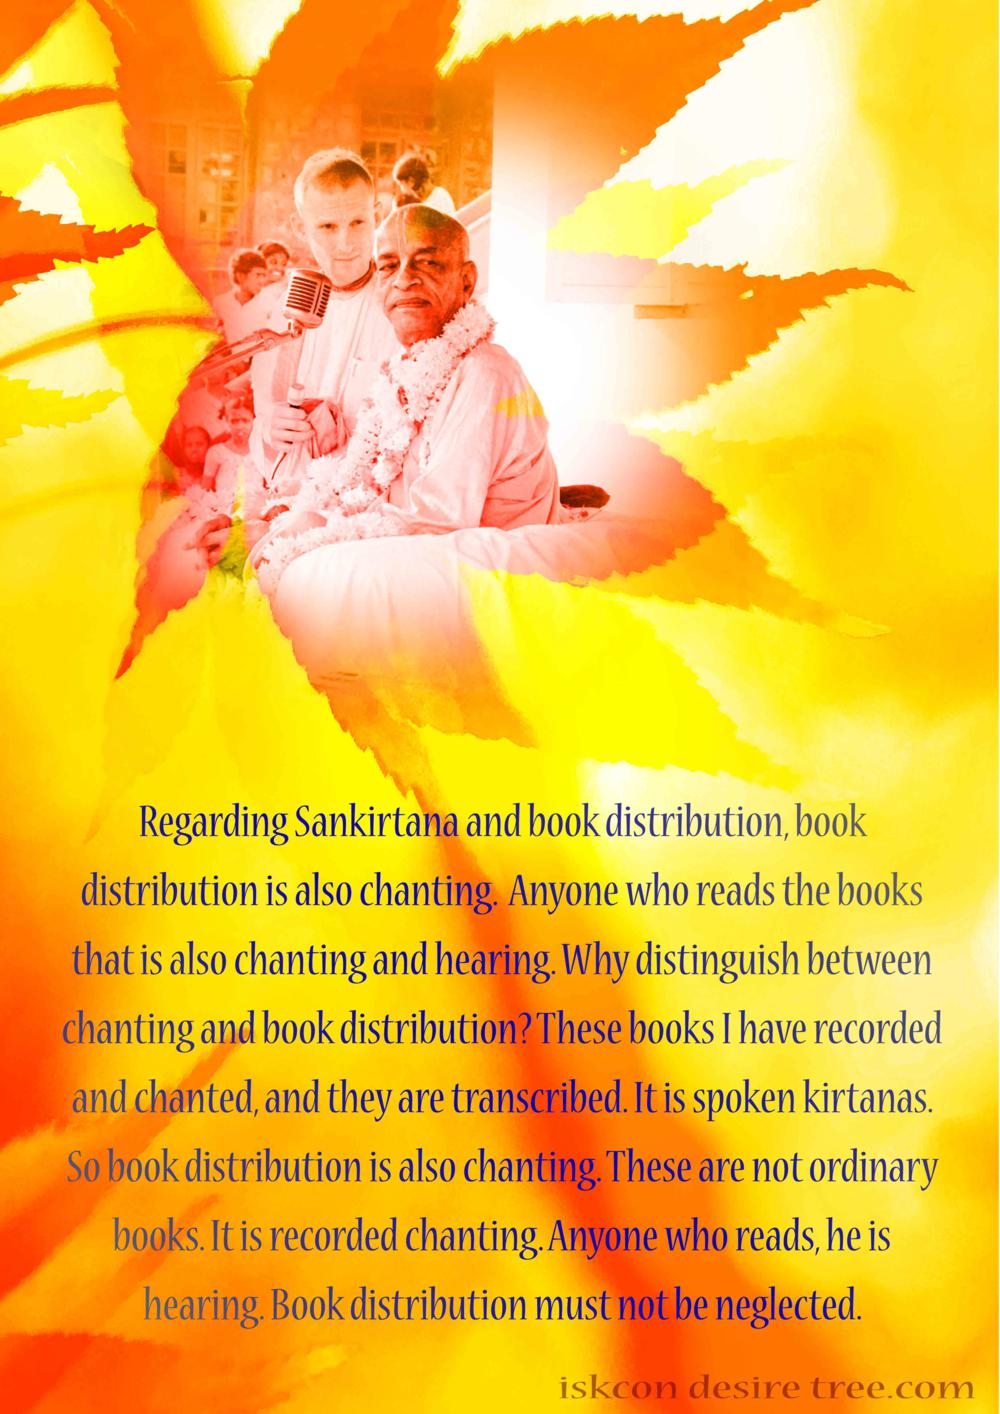 Quotes by Srila Prabhupada on Sankirtan and Book Distribtuion